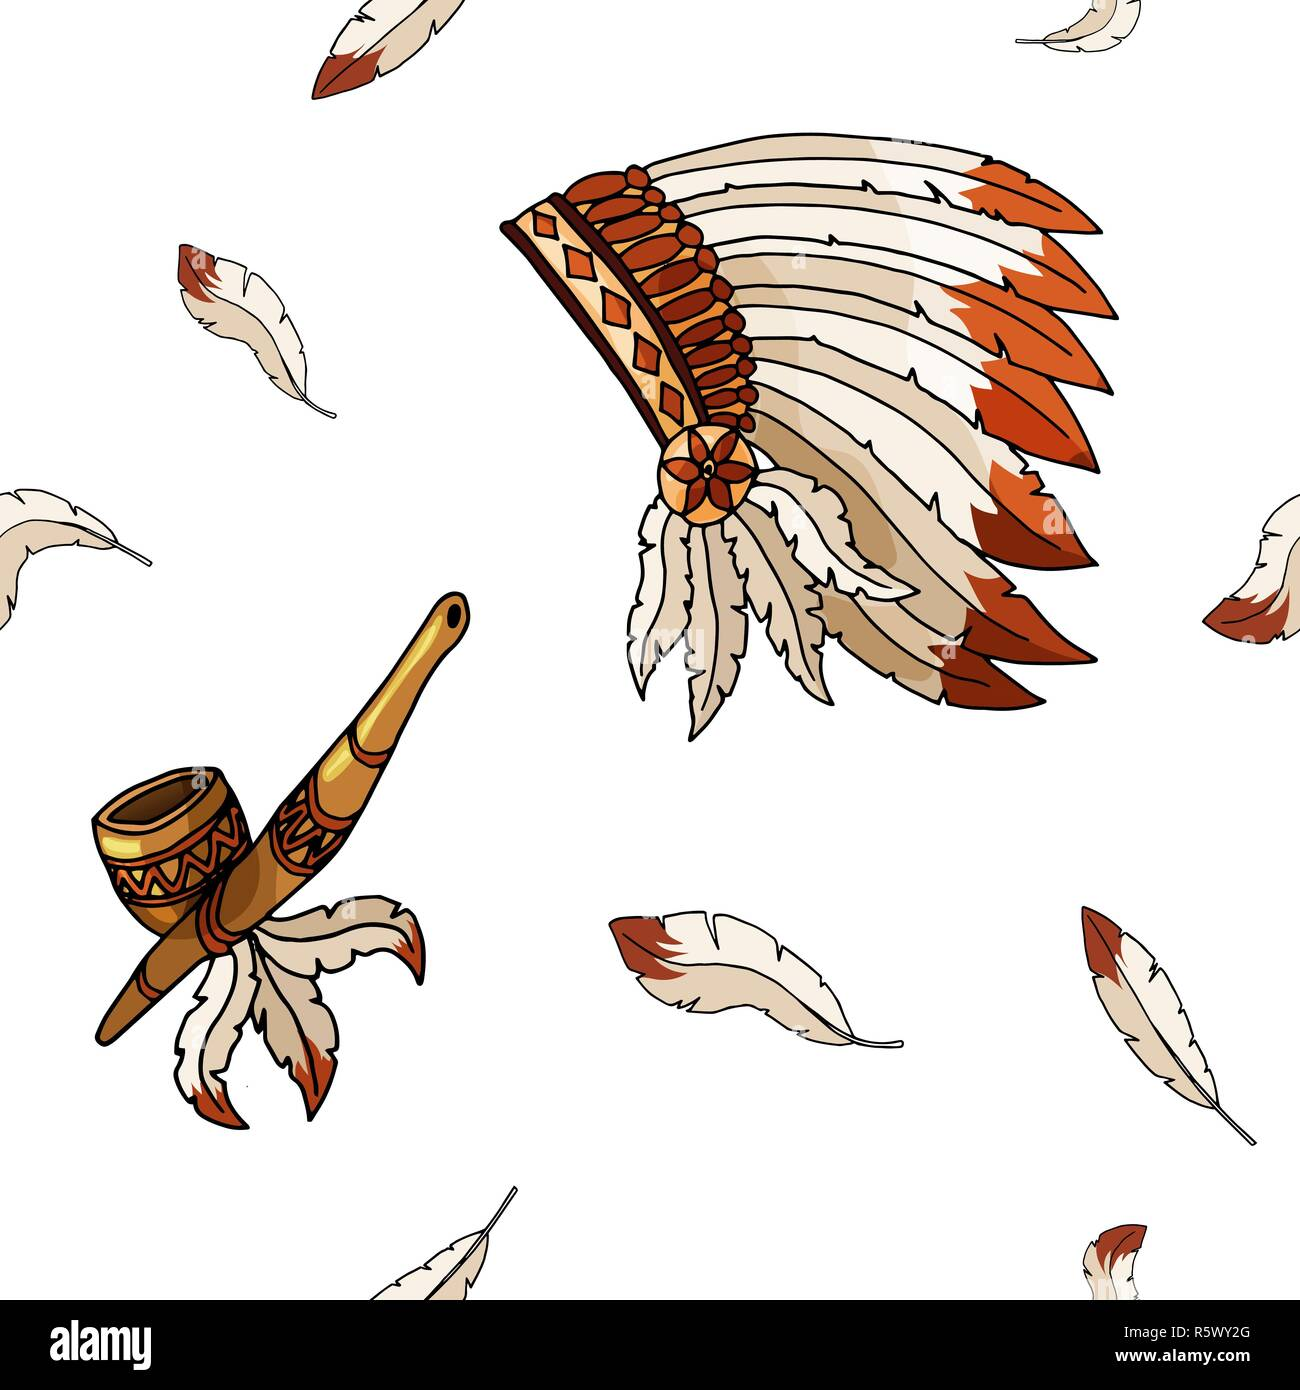 Warbonnet on white background. Rough festival feathers seamless pattern - Stock Image